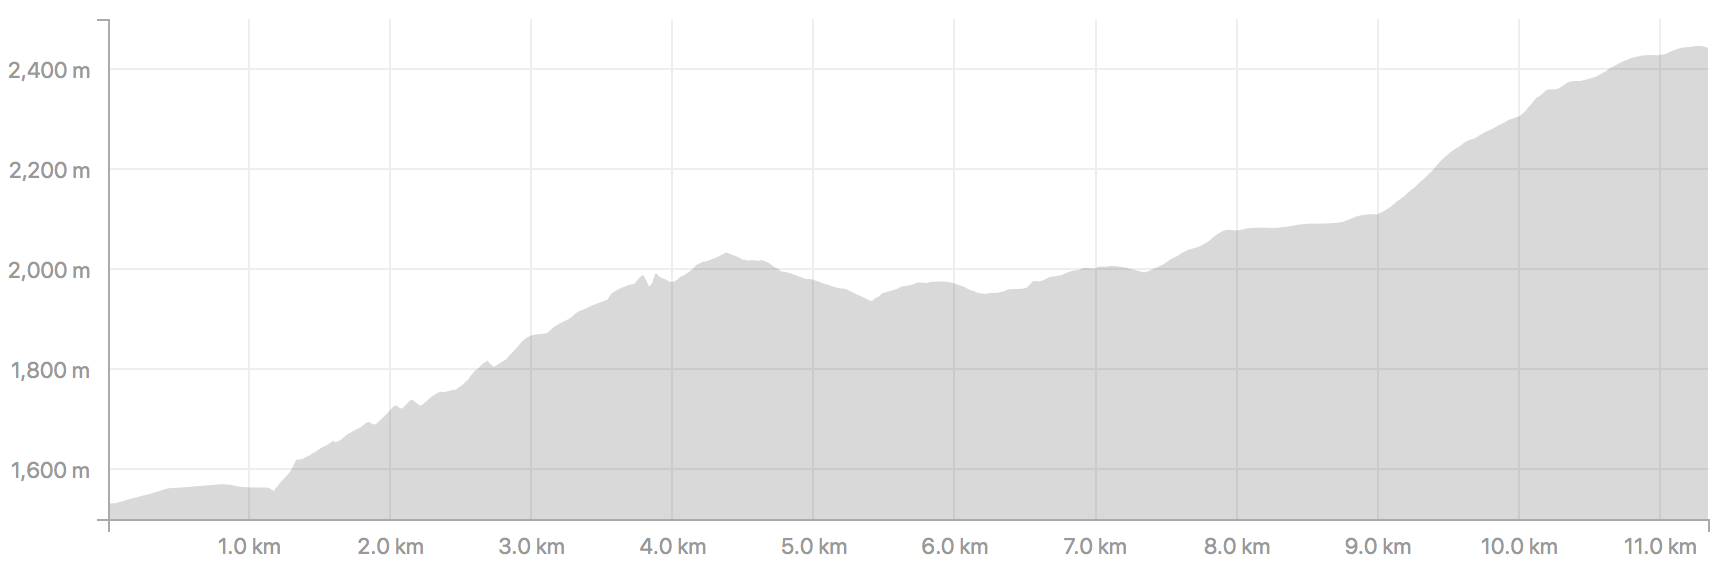 course profile.png